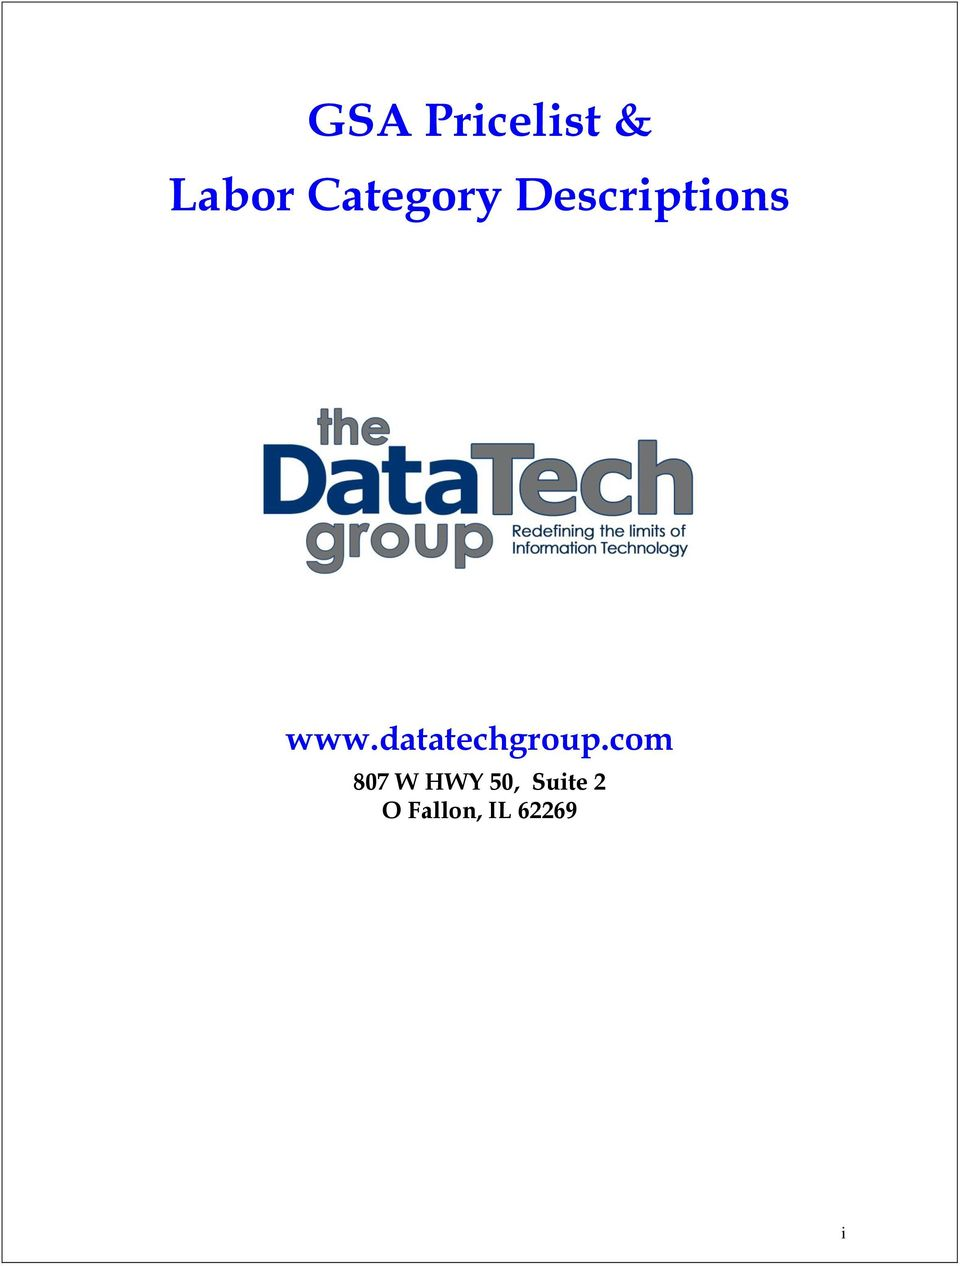 datatechgroup.